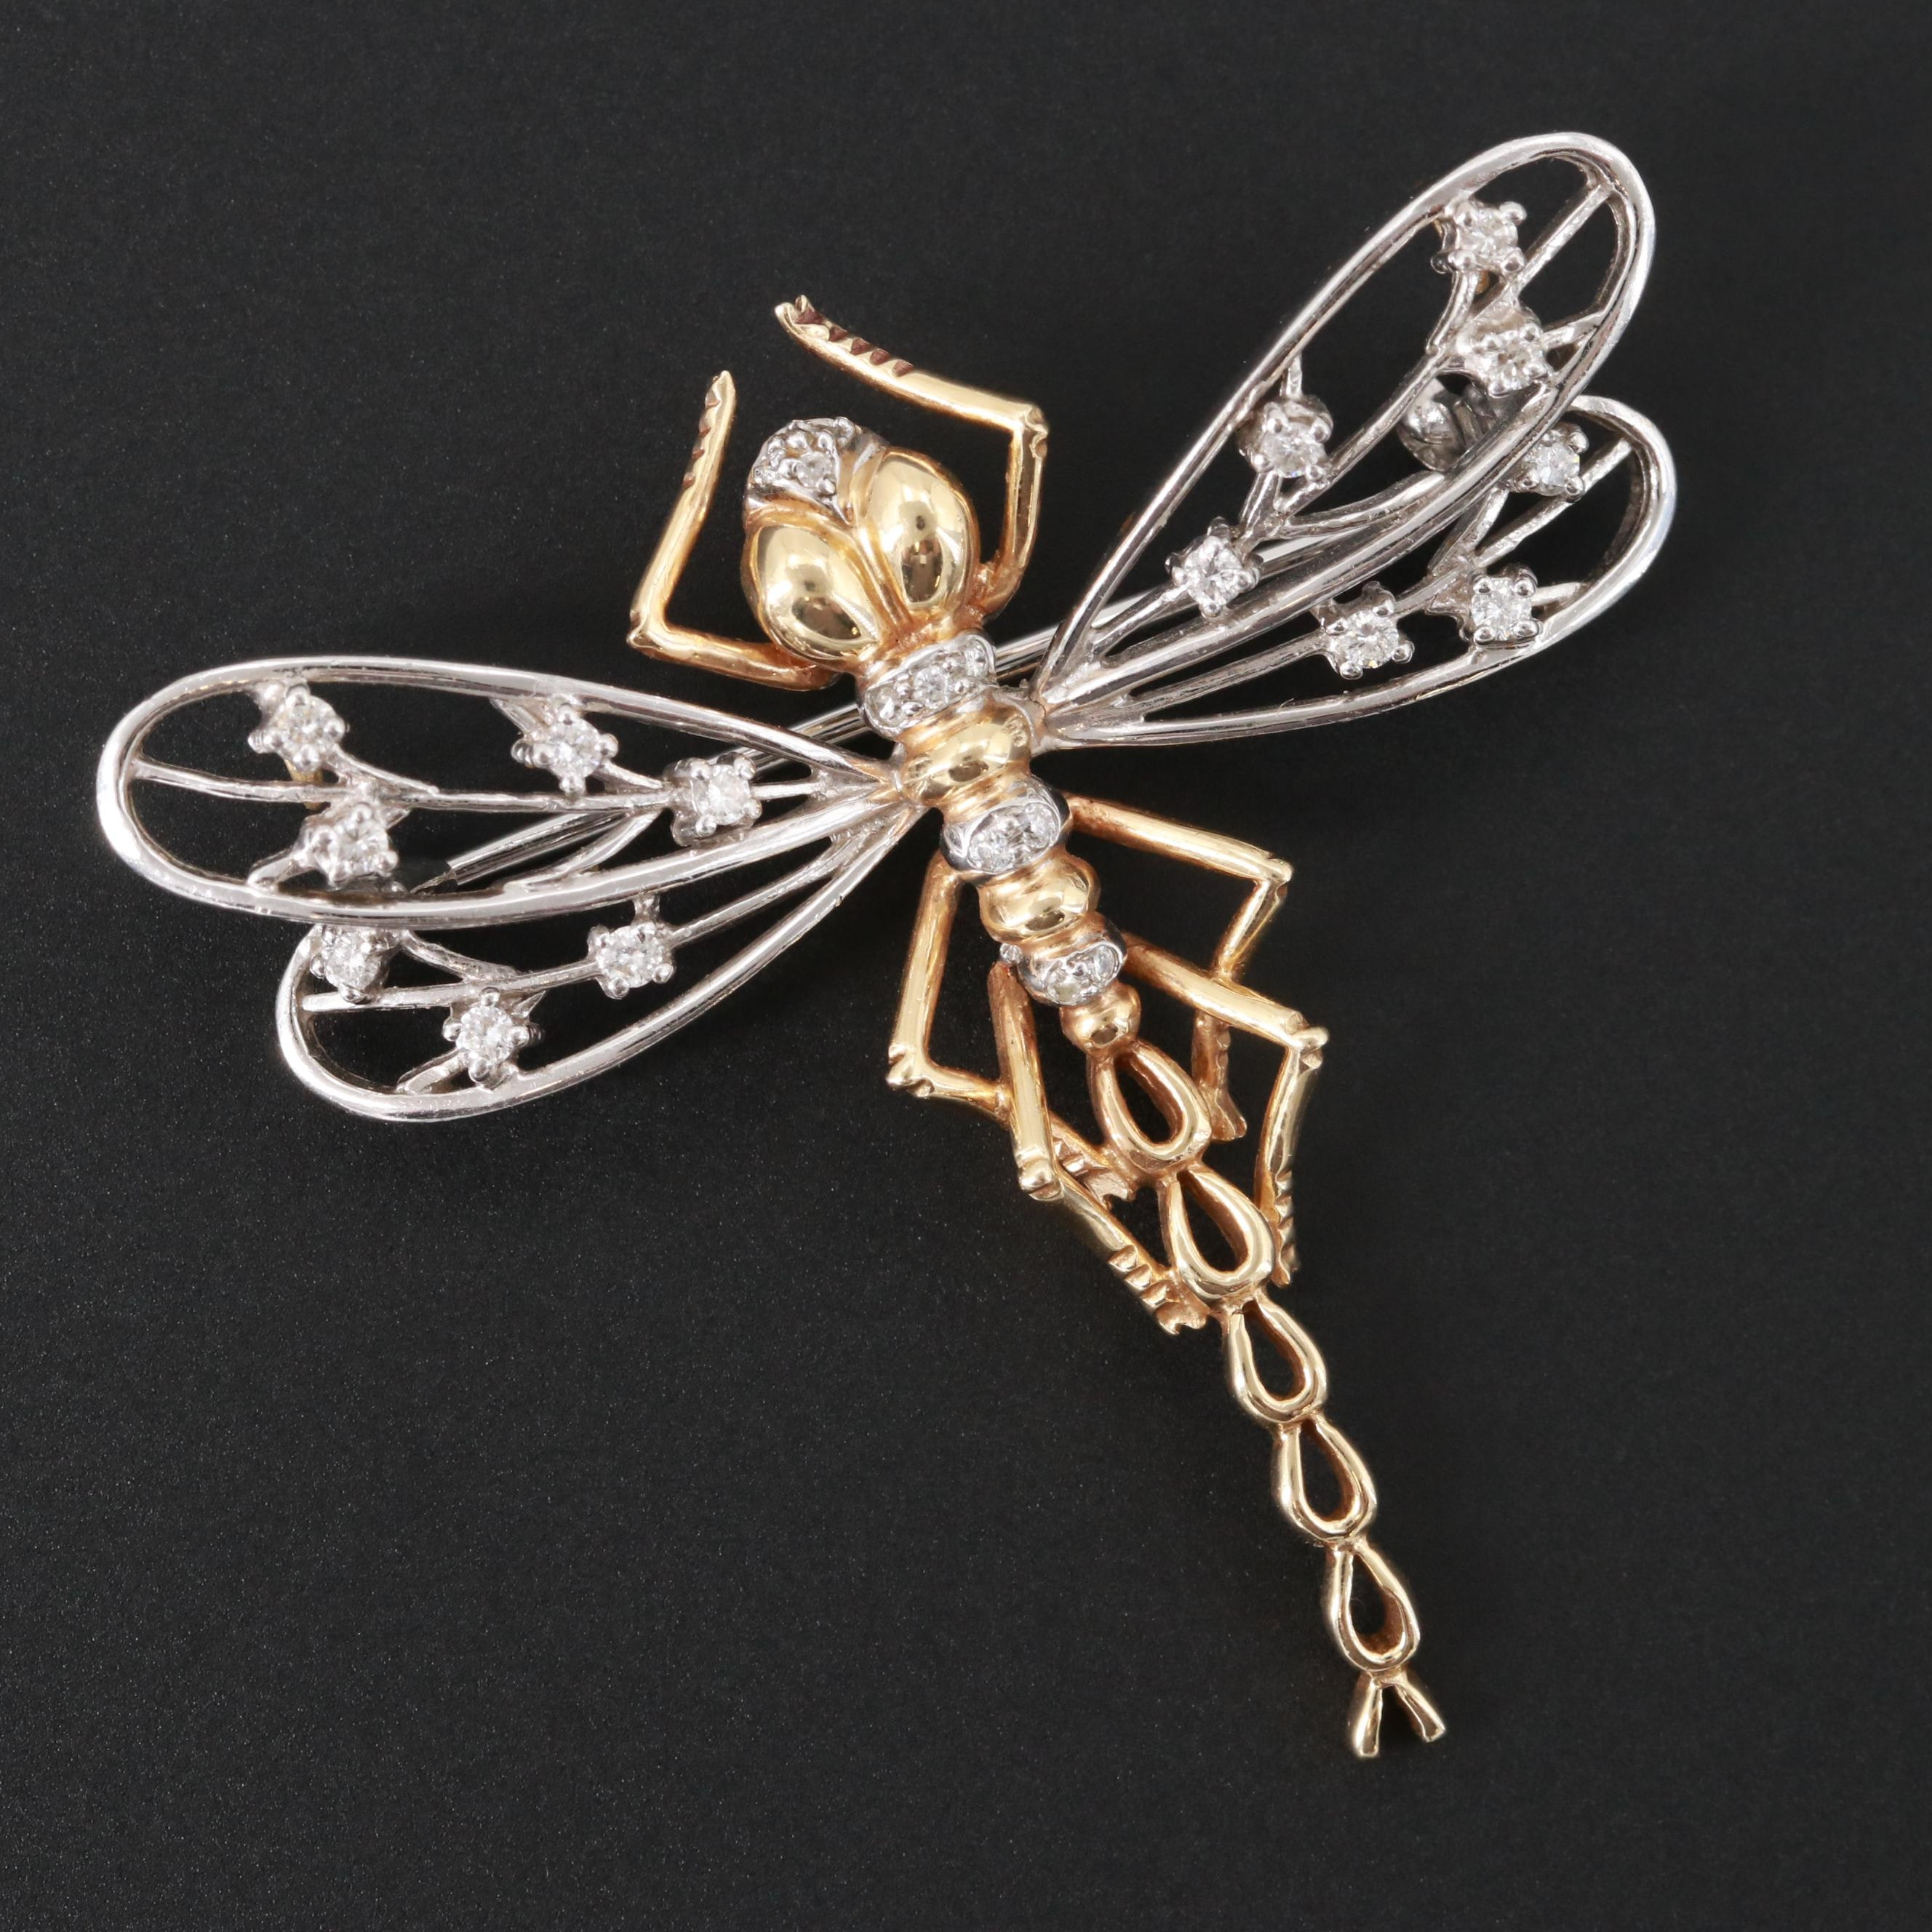 14K White and Yellow Gold Diamond Dragonfly Converter Brooch